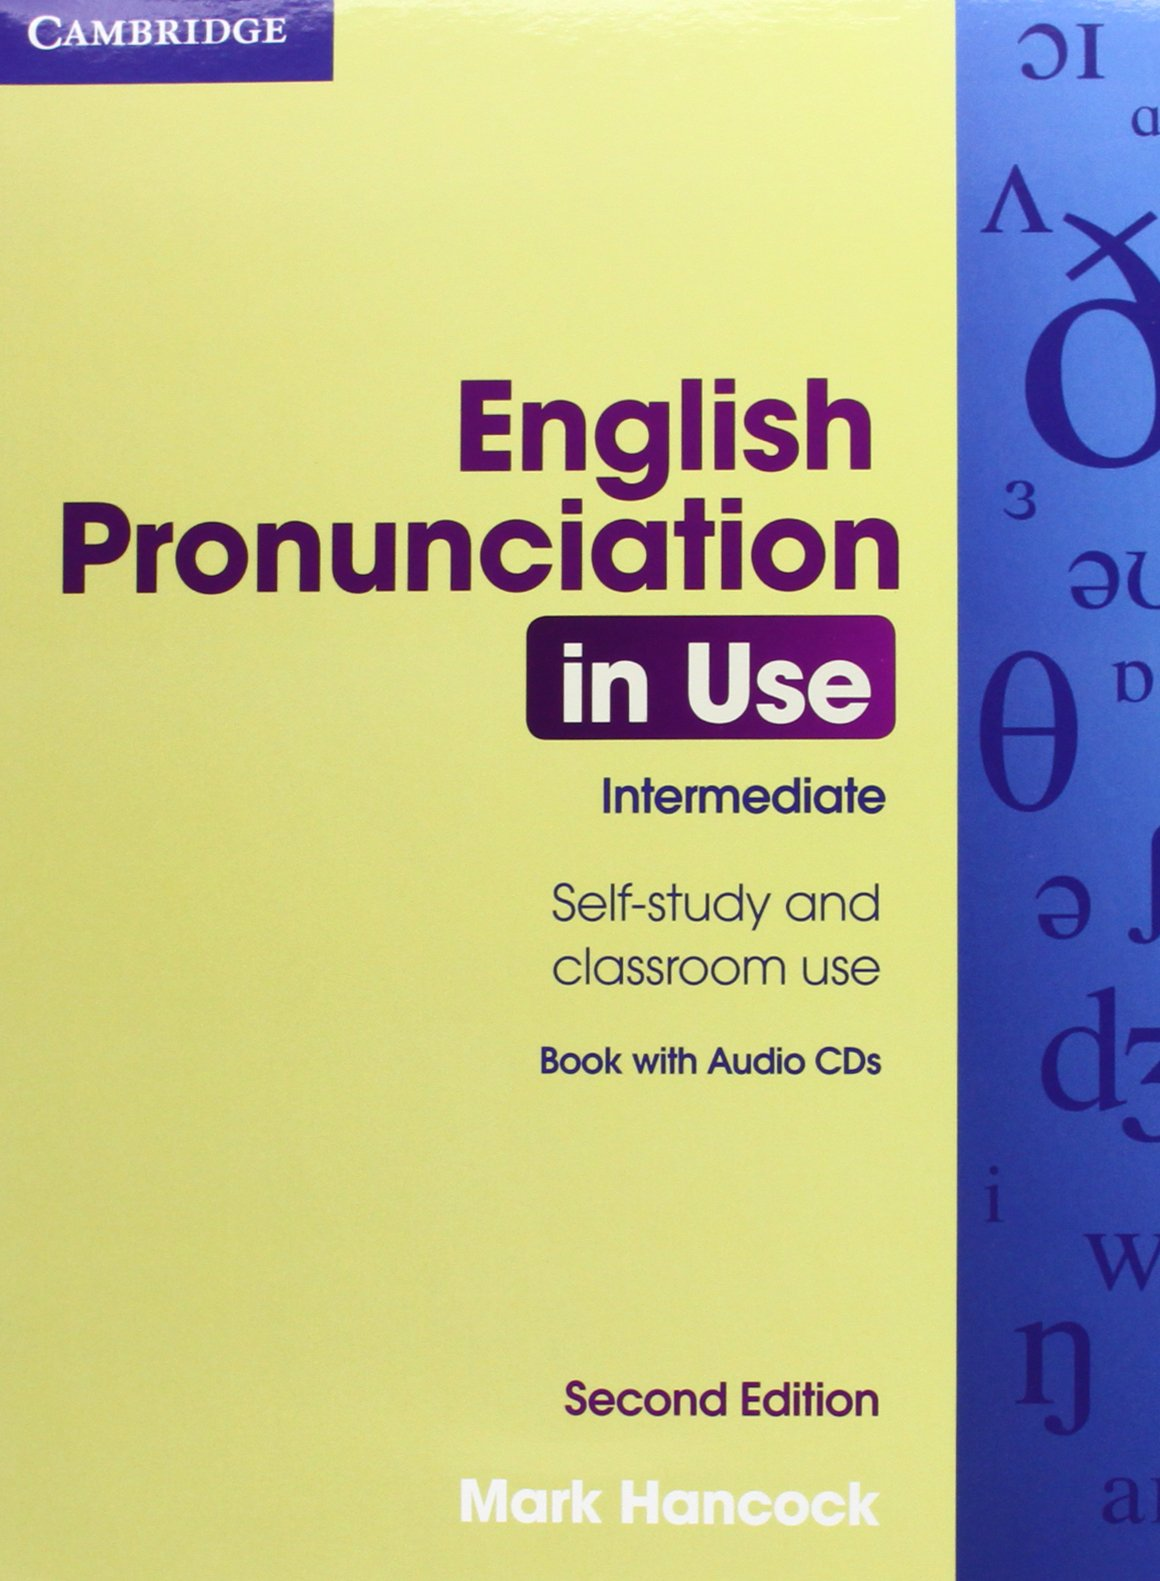 English Pronunciation in Use -anh ngữ Ms Hoa